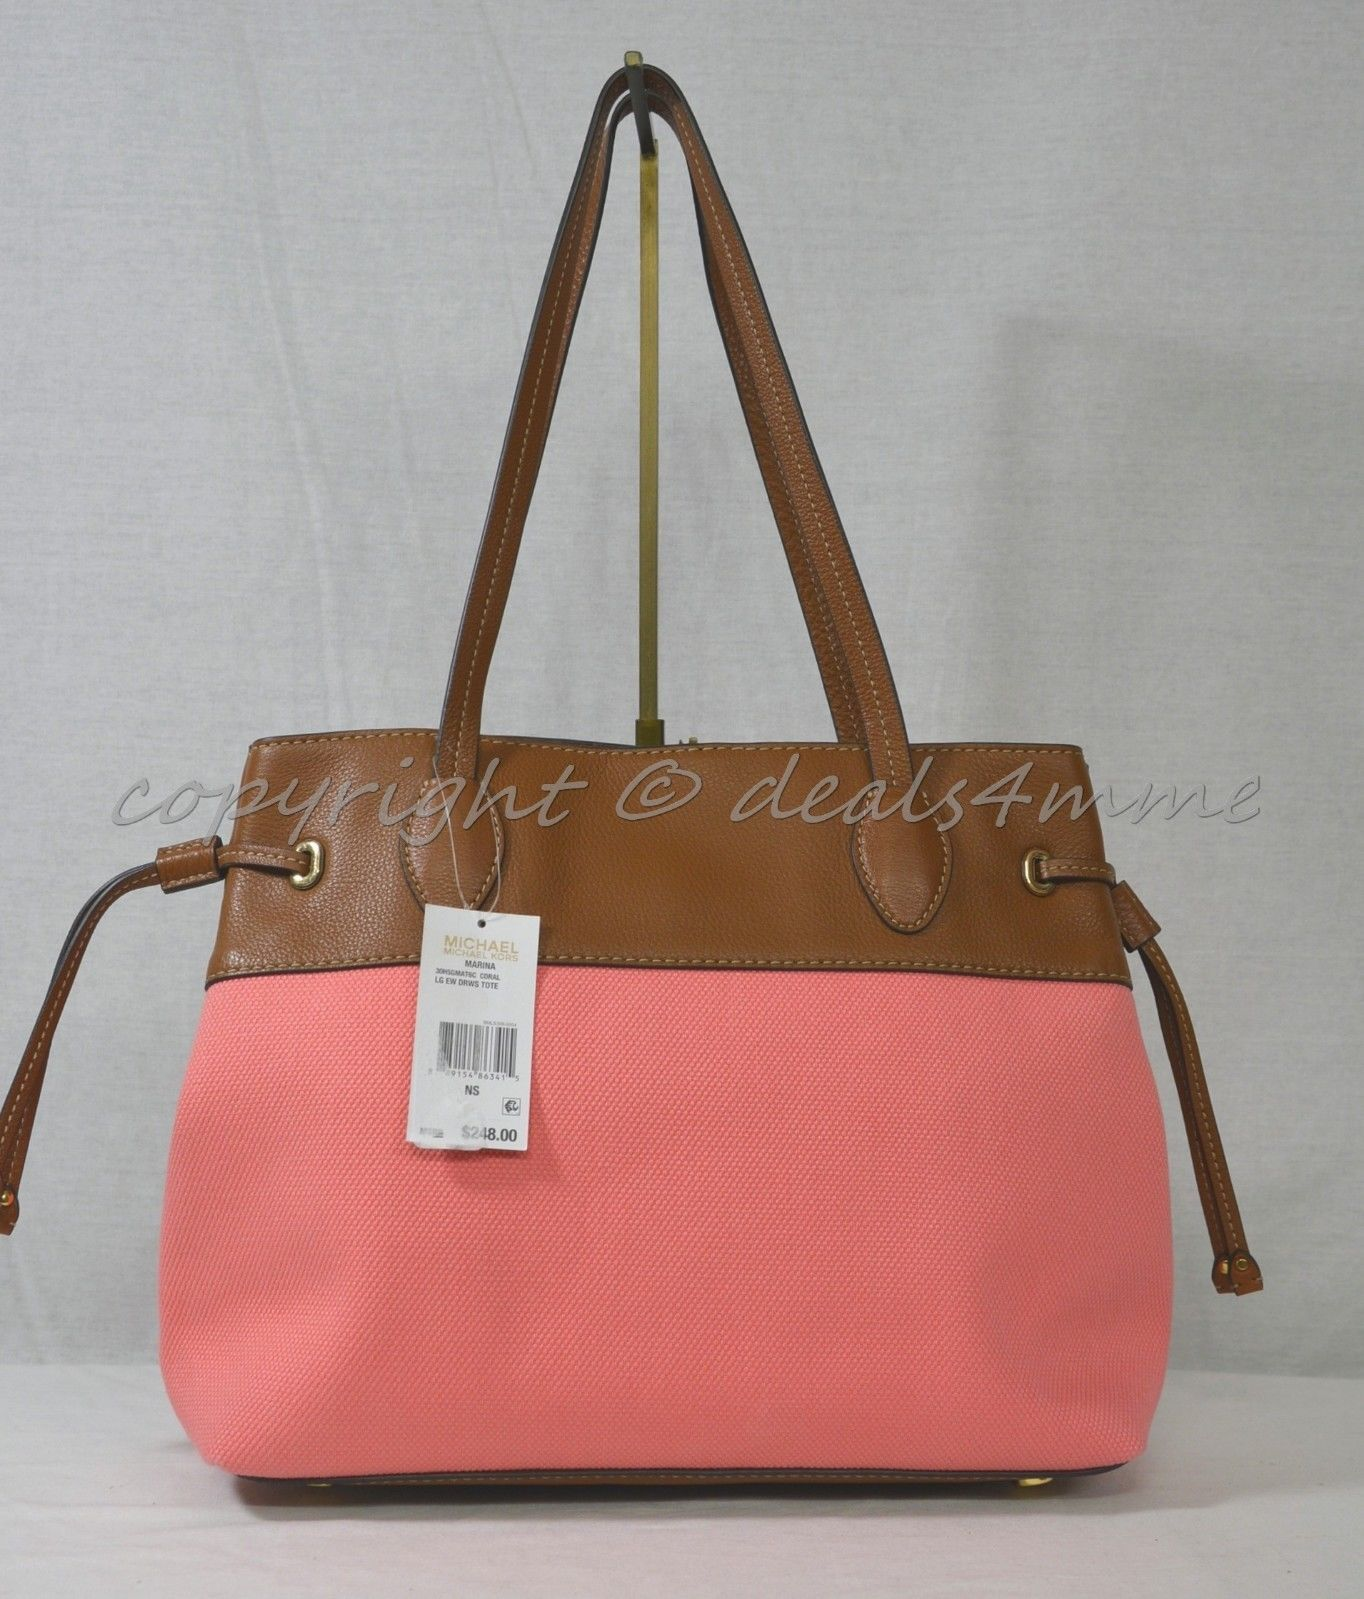 744c37f04848ab Michael Kors Marina East West Drawstring Tote in Coral Canvas & Tan Leather